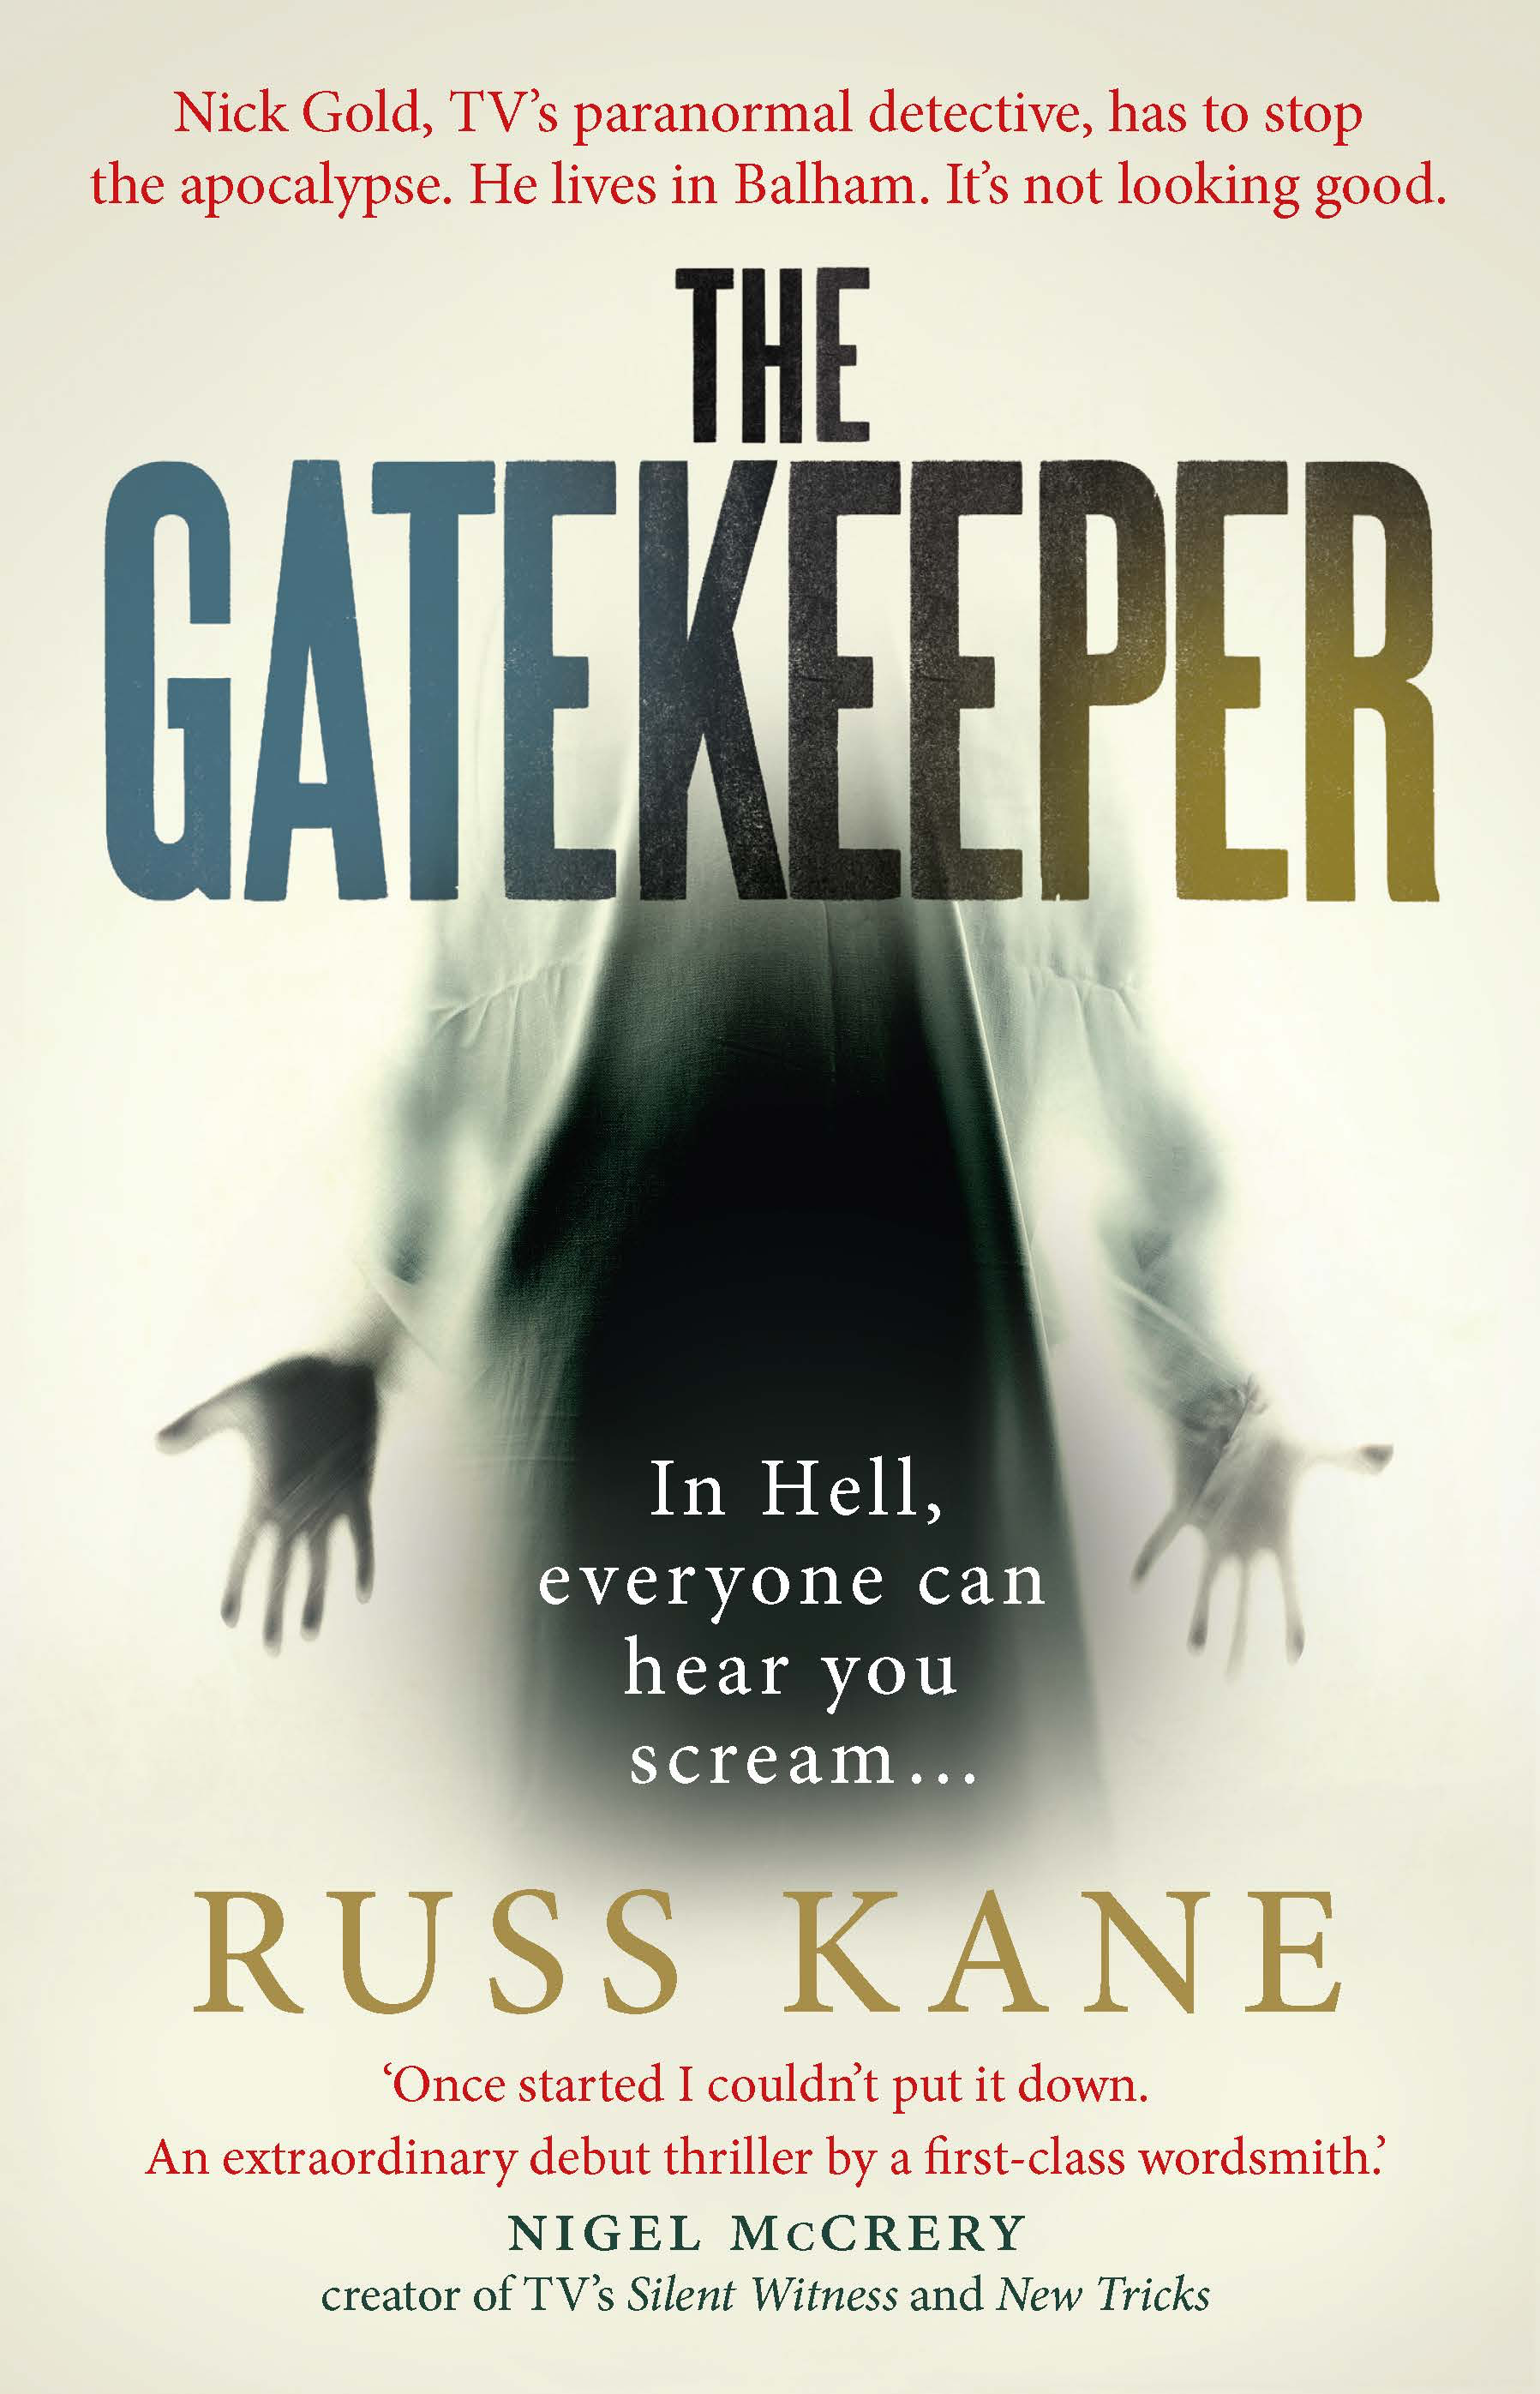 THE GATEKEEPER FRONT COVER jpeg 19.3.19.png